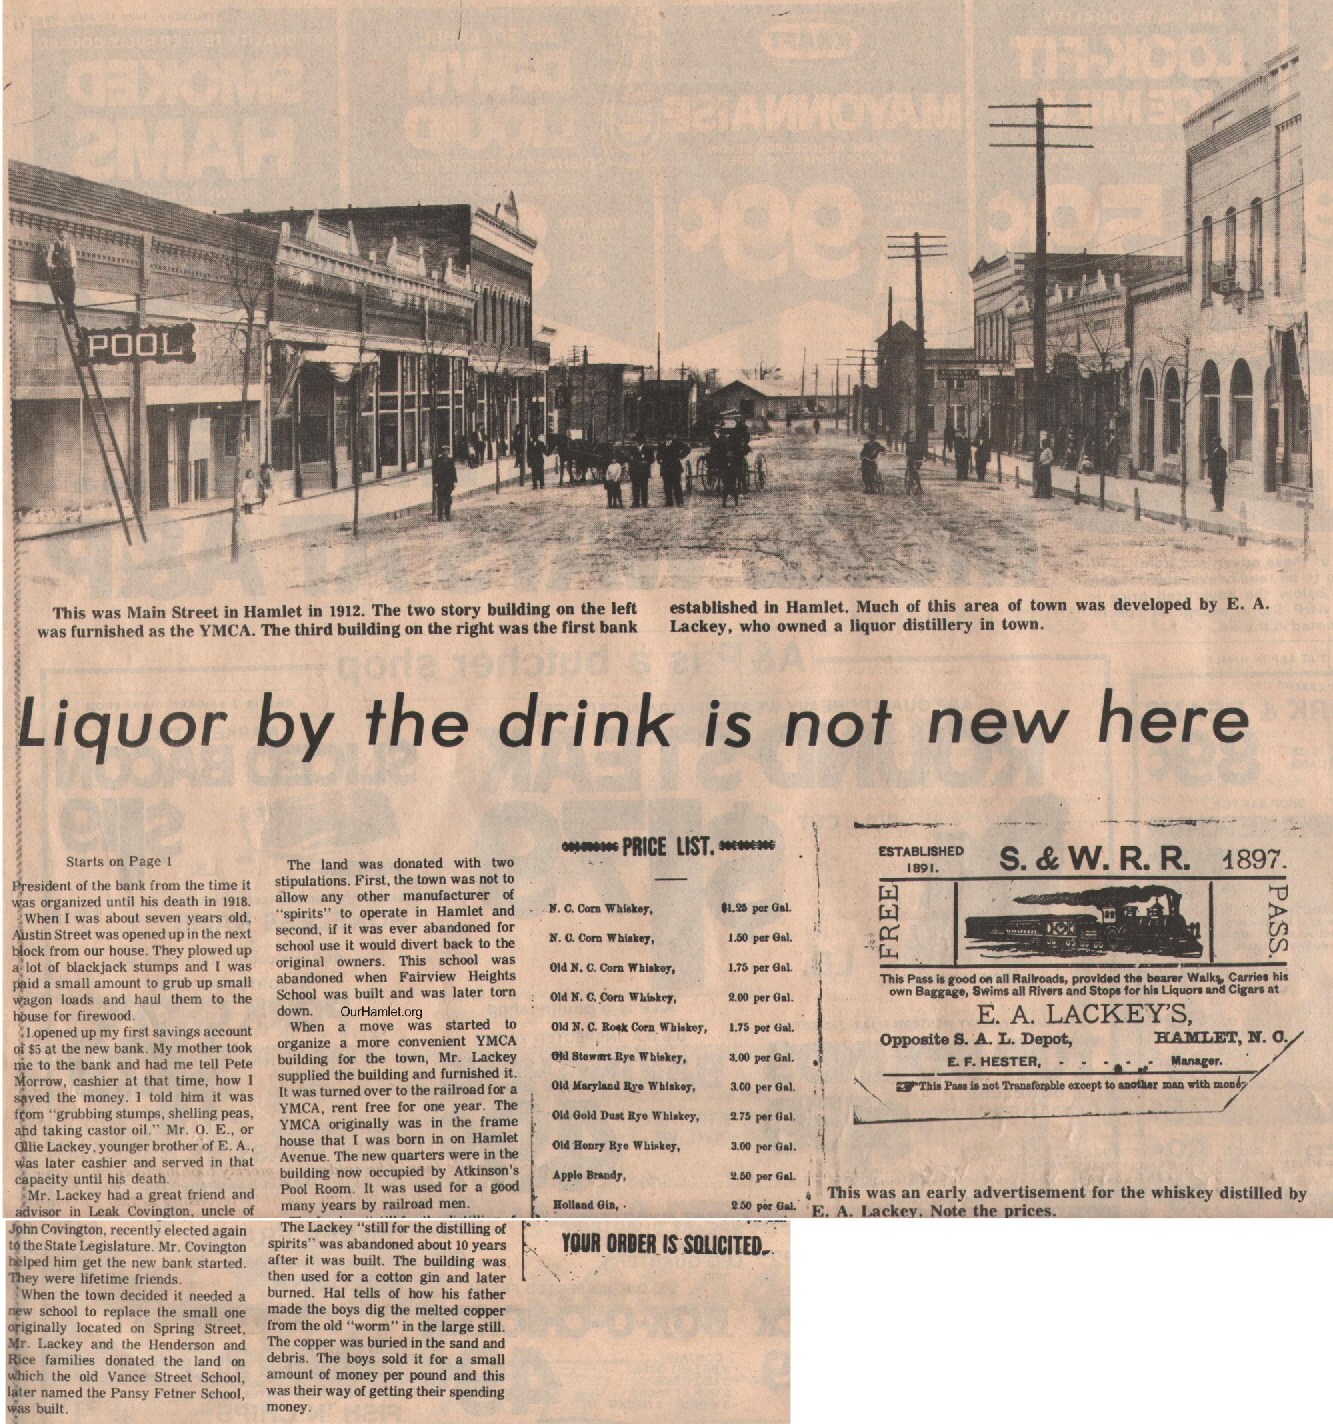 The Squire - Liquor by the drink is not new here2 OH